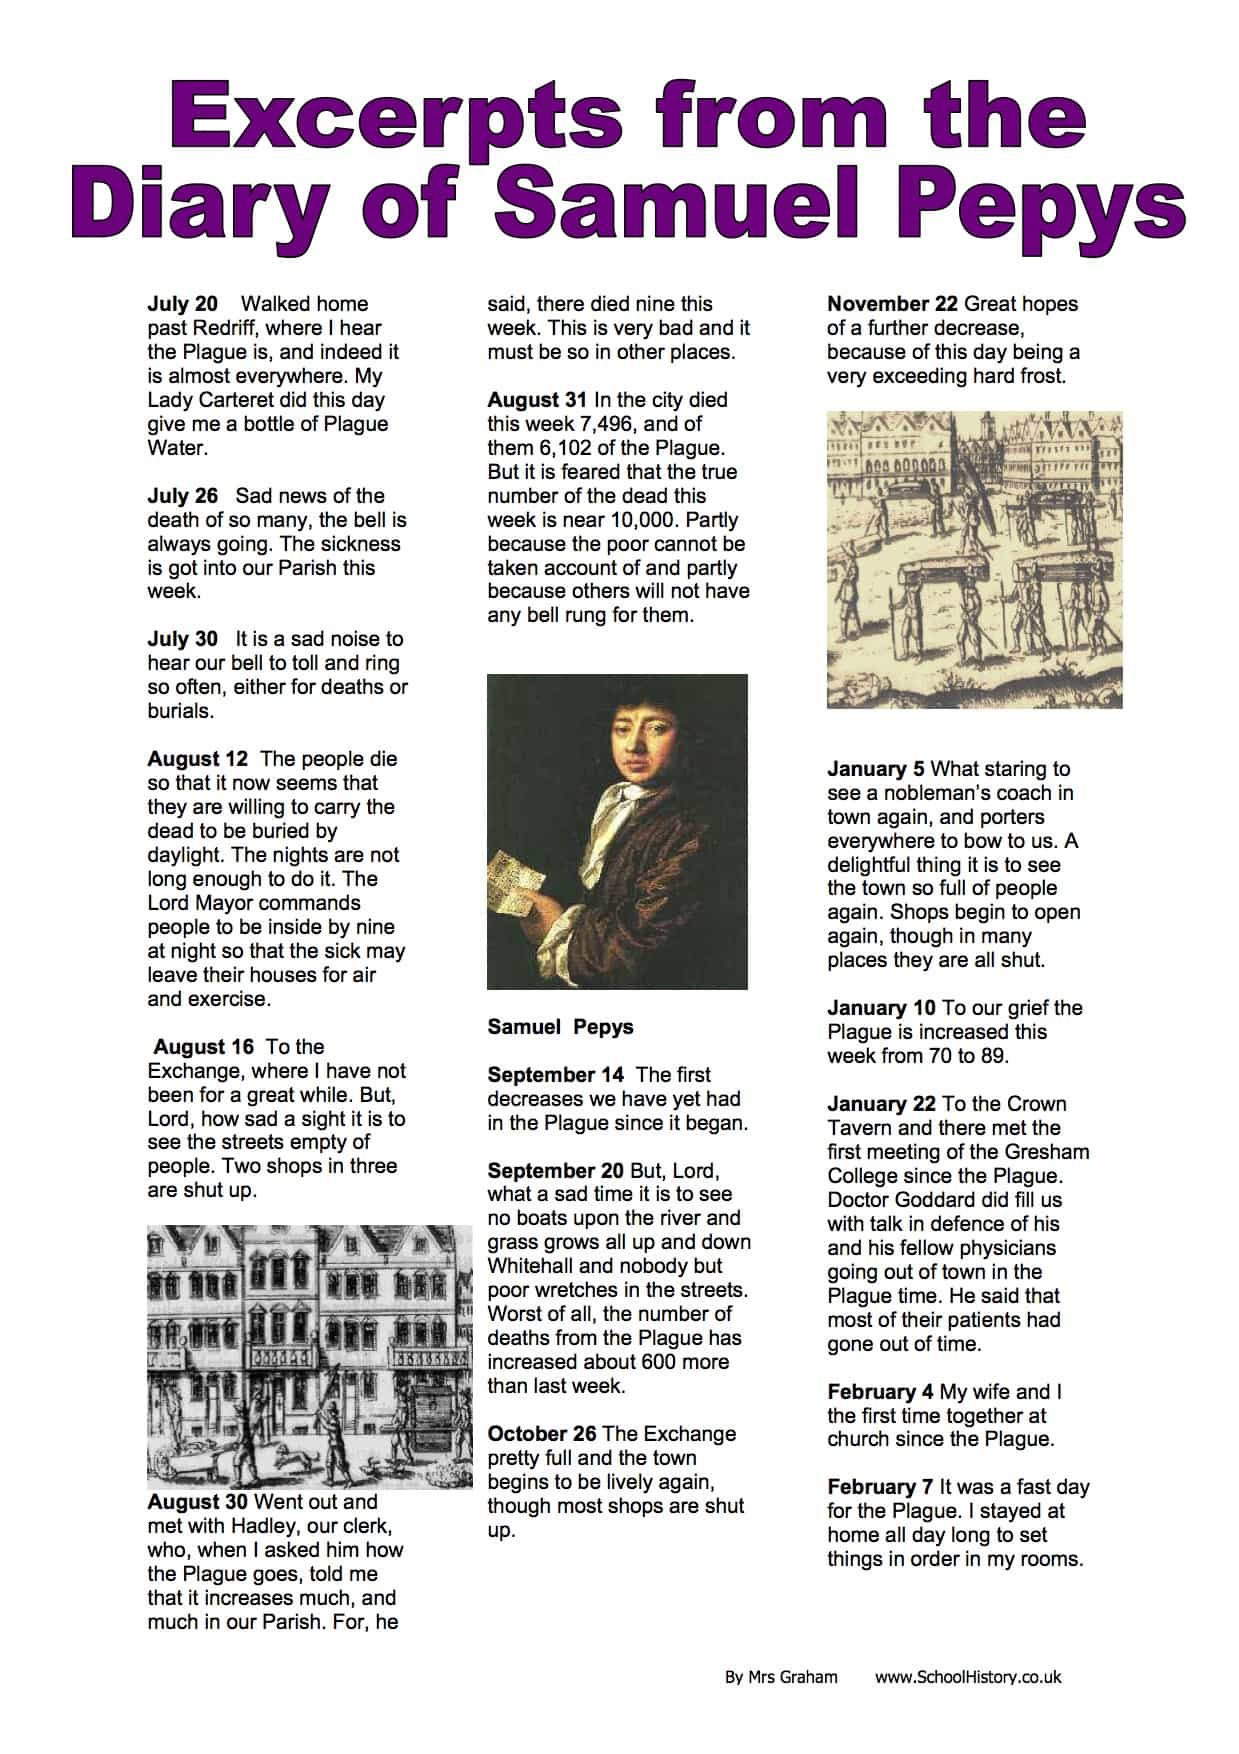 Excerpts from the Diary of Samuel Pepys | History Resources